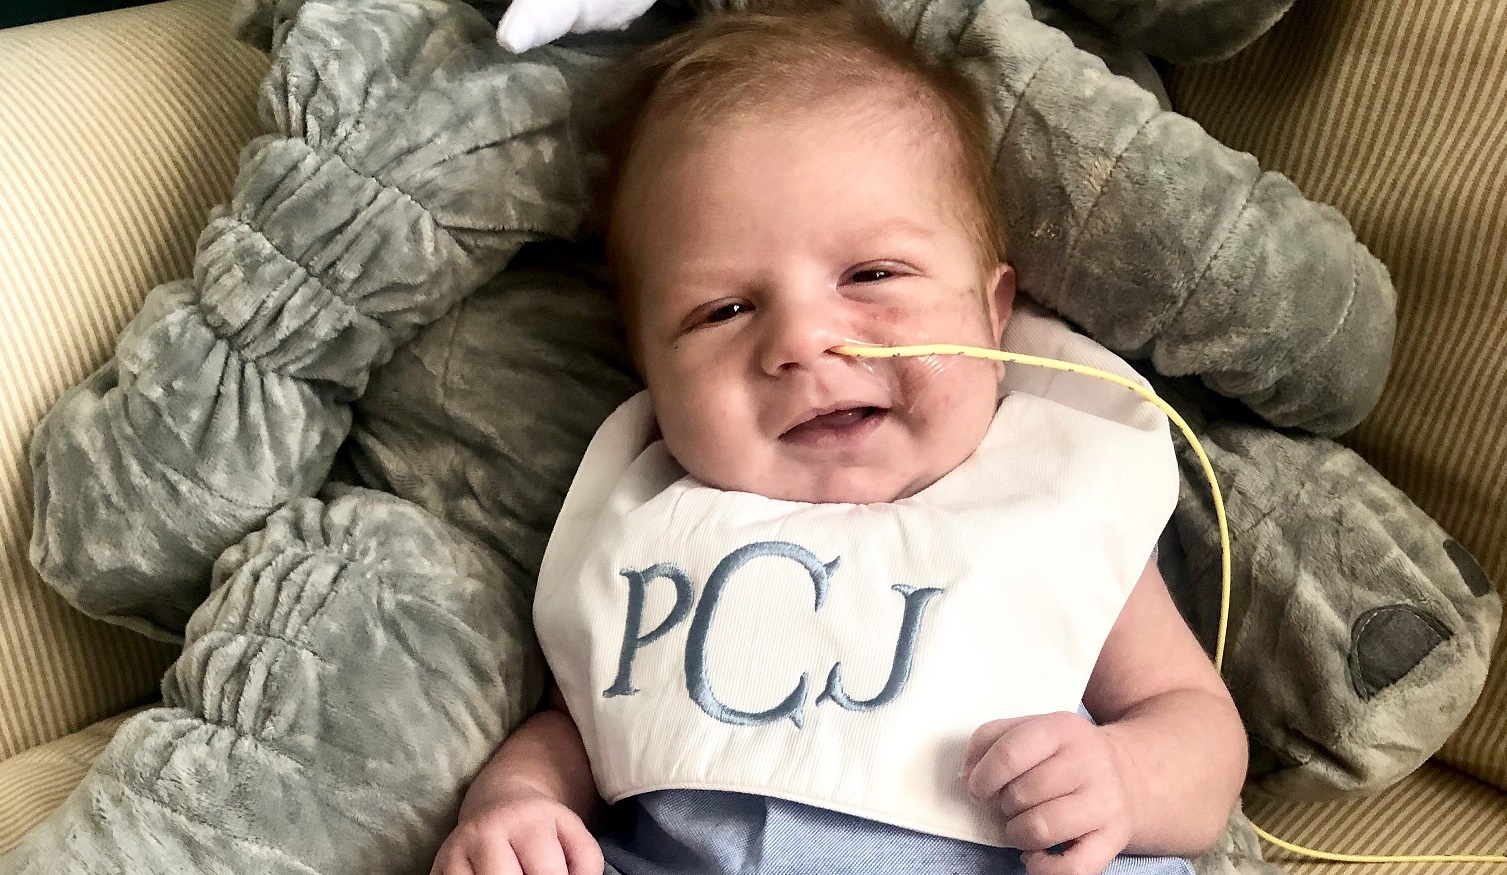 baby with breathing tube in his nose